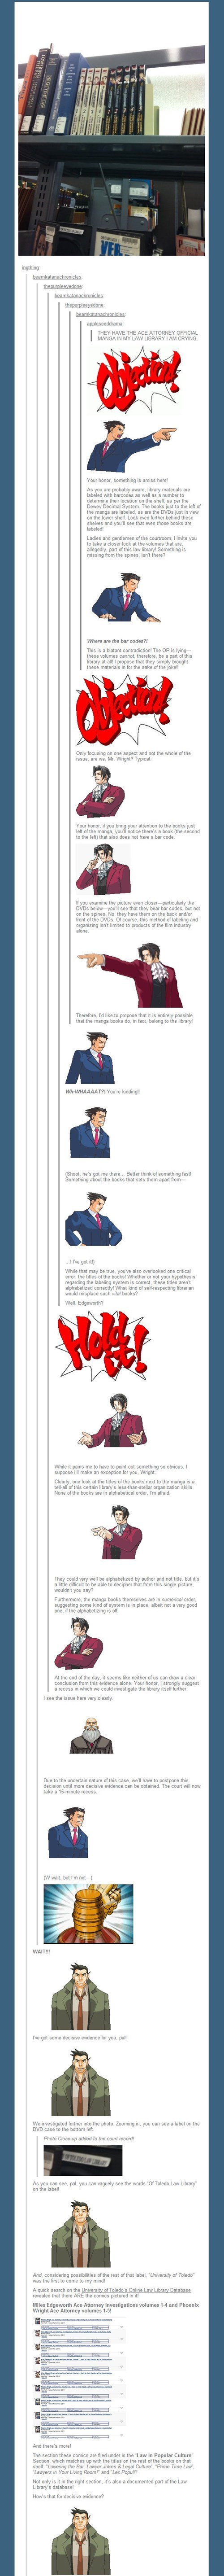 phoenix wright tumblr case closed libraries video games - 8168398848